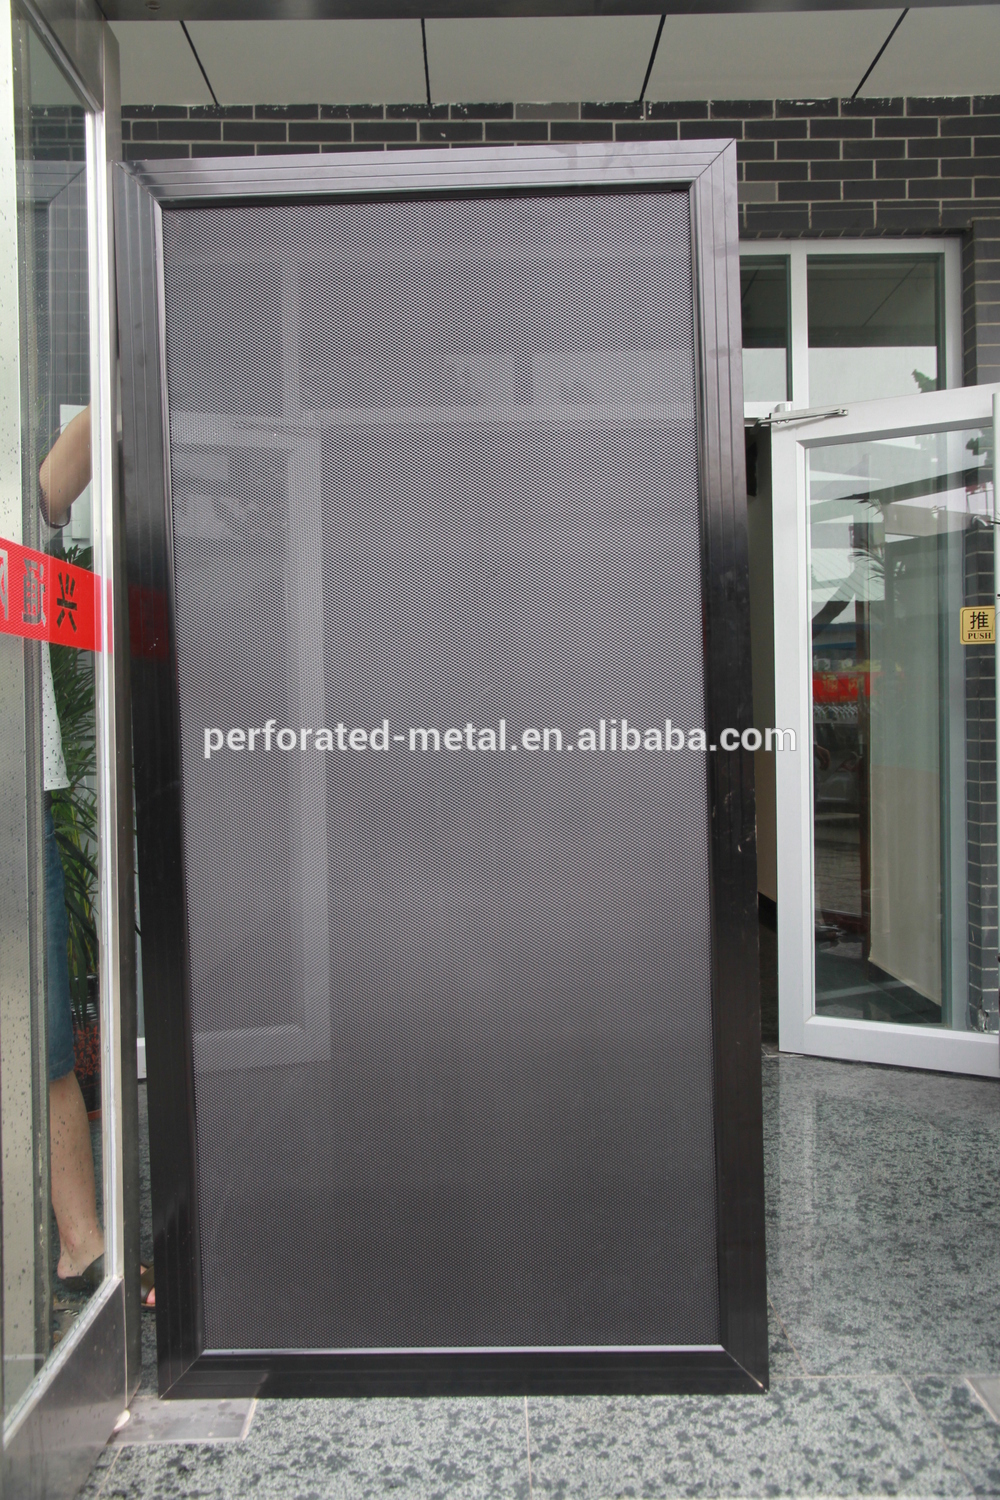 Perforated metal waterproof window screen buy window for Window mesh screen